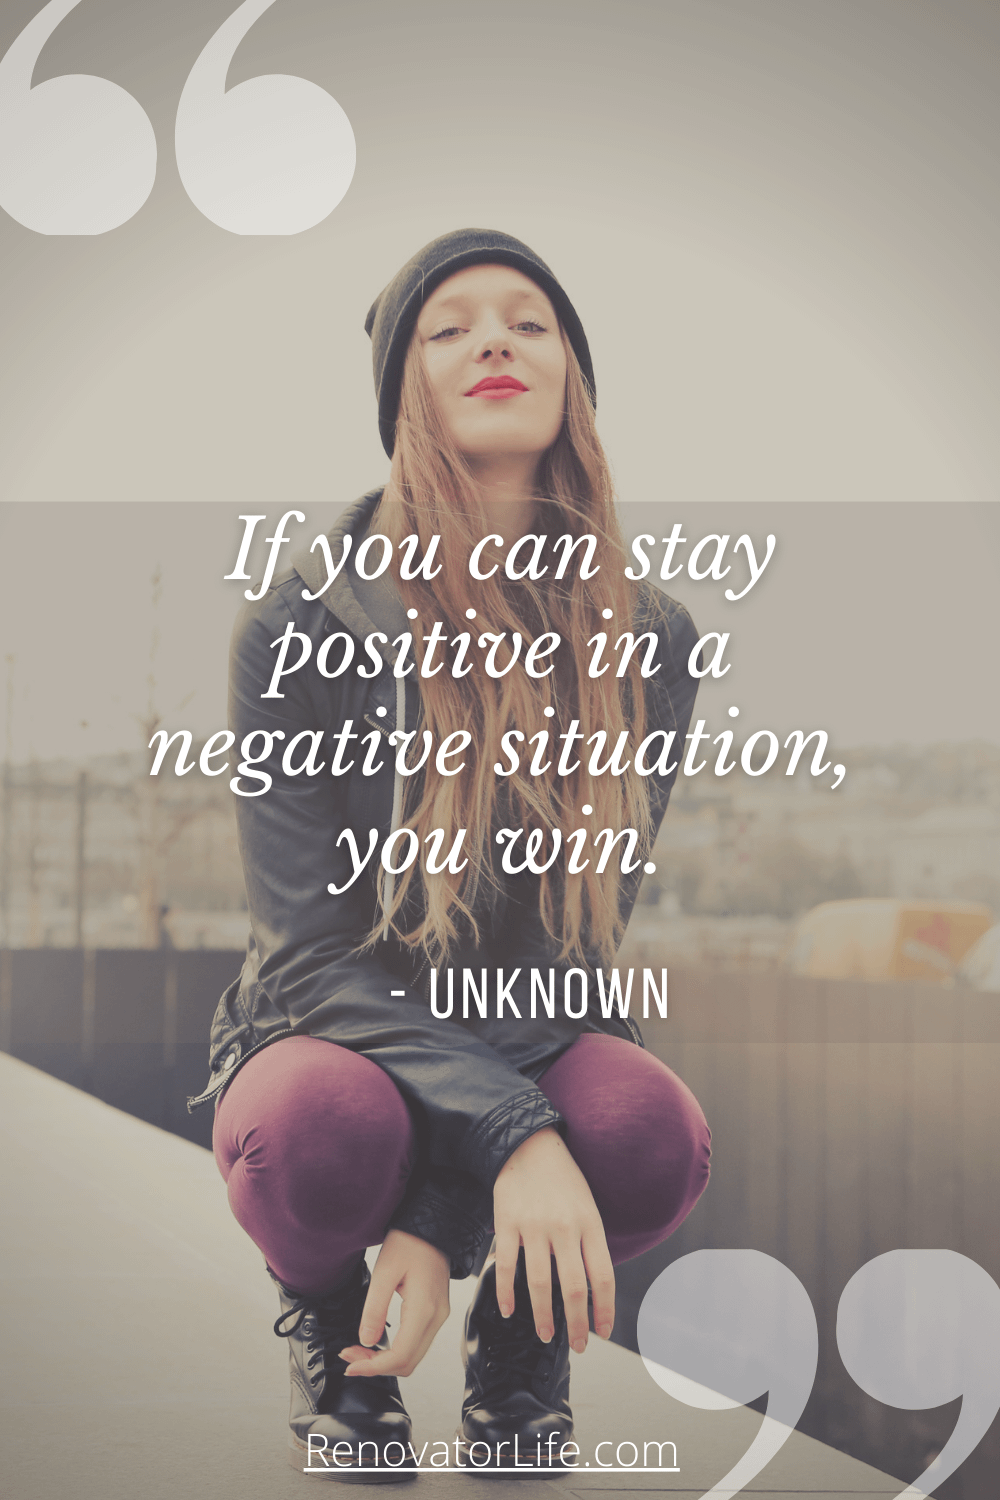 If you can stay positive in a negative situation, you win.